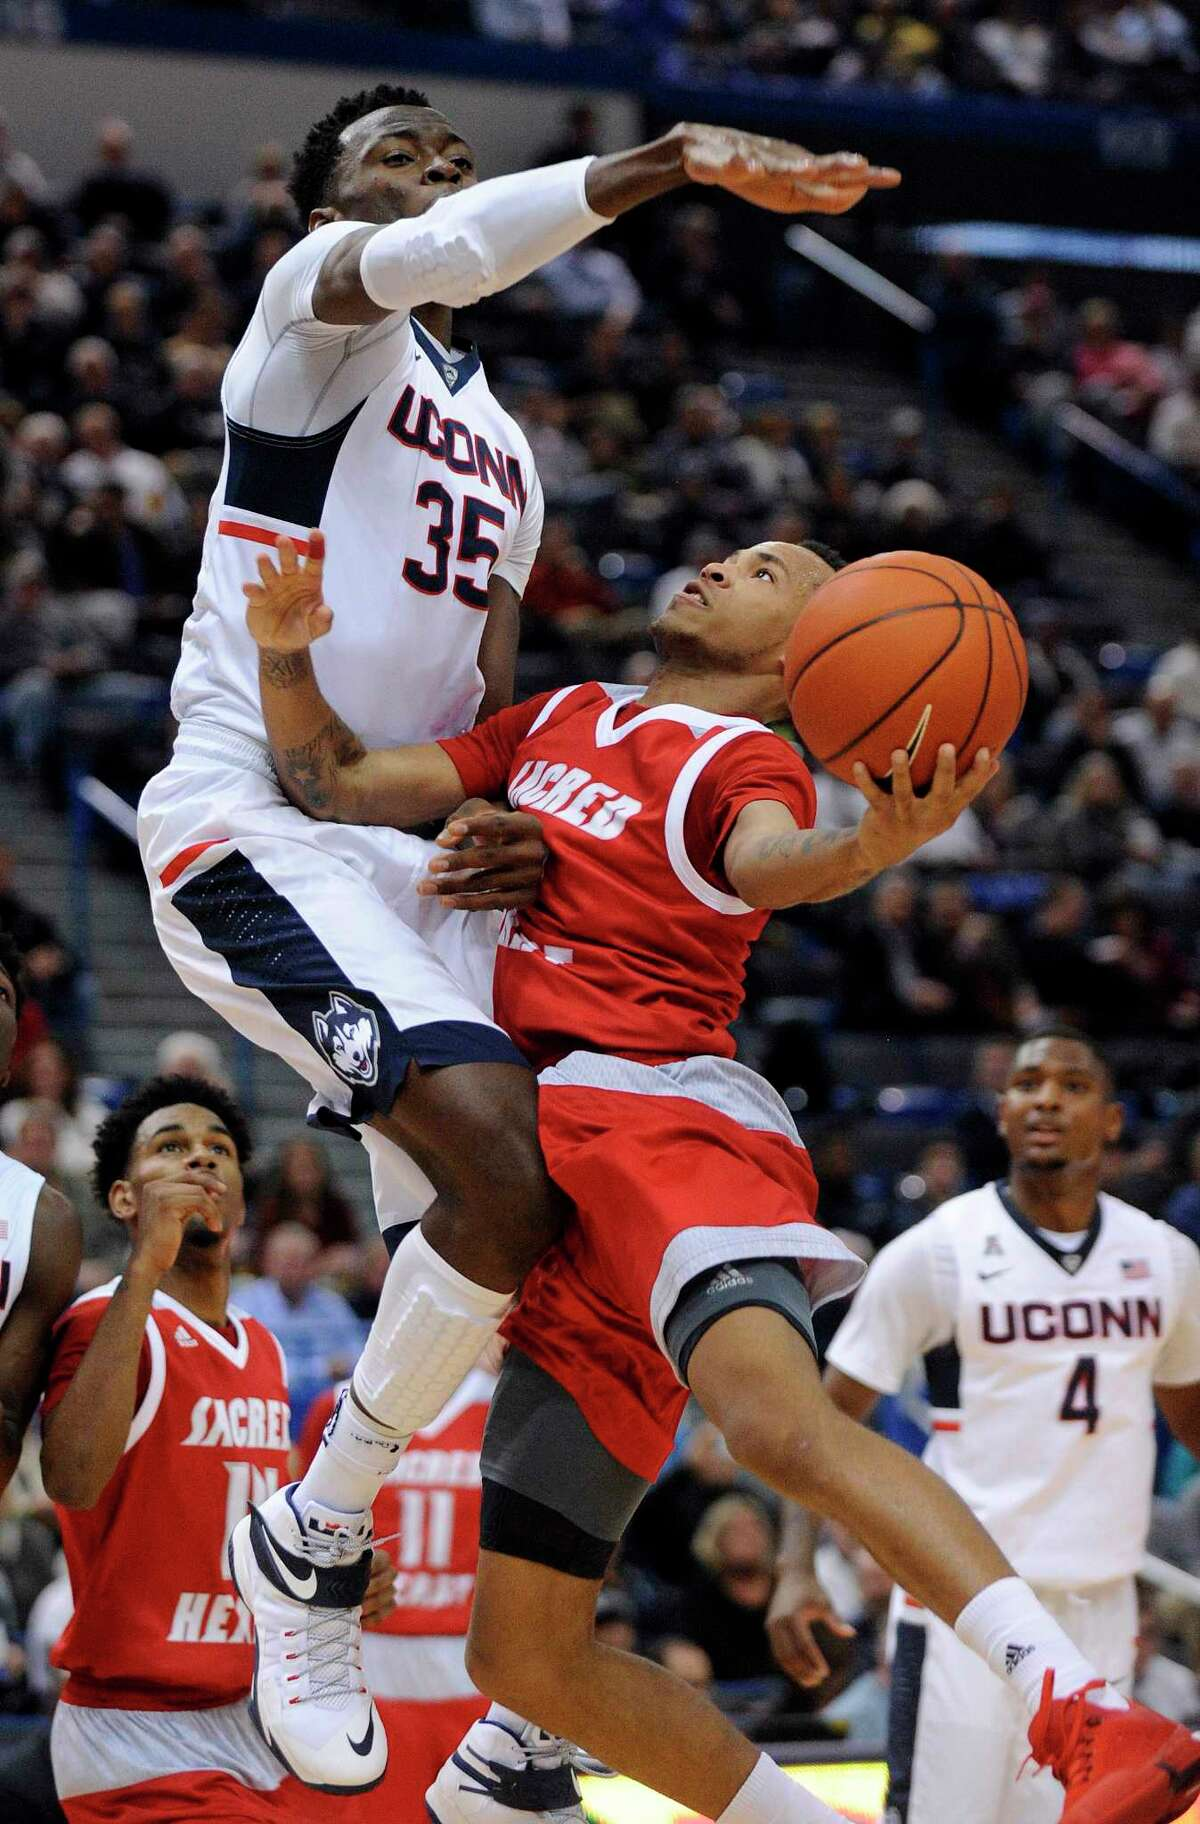 Connecticut's Amida Brimah (35) guards Sacred Heart's Cane Broome during the first half Wednesday.